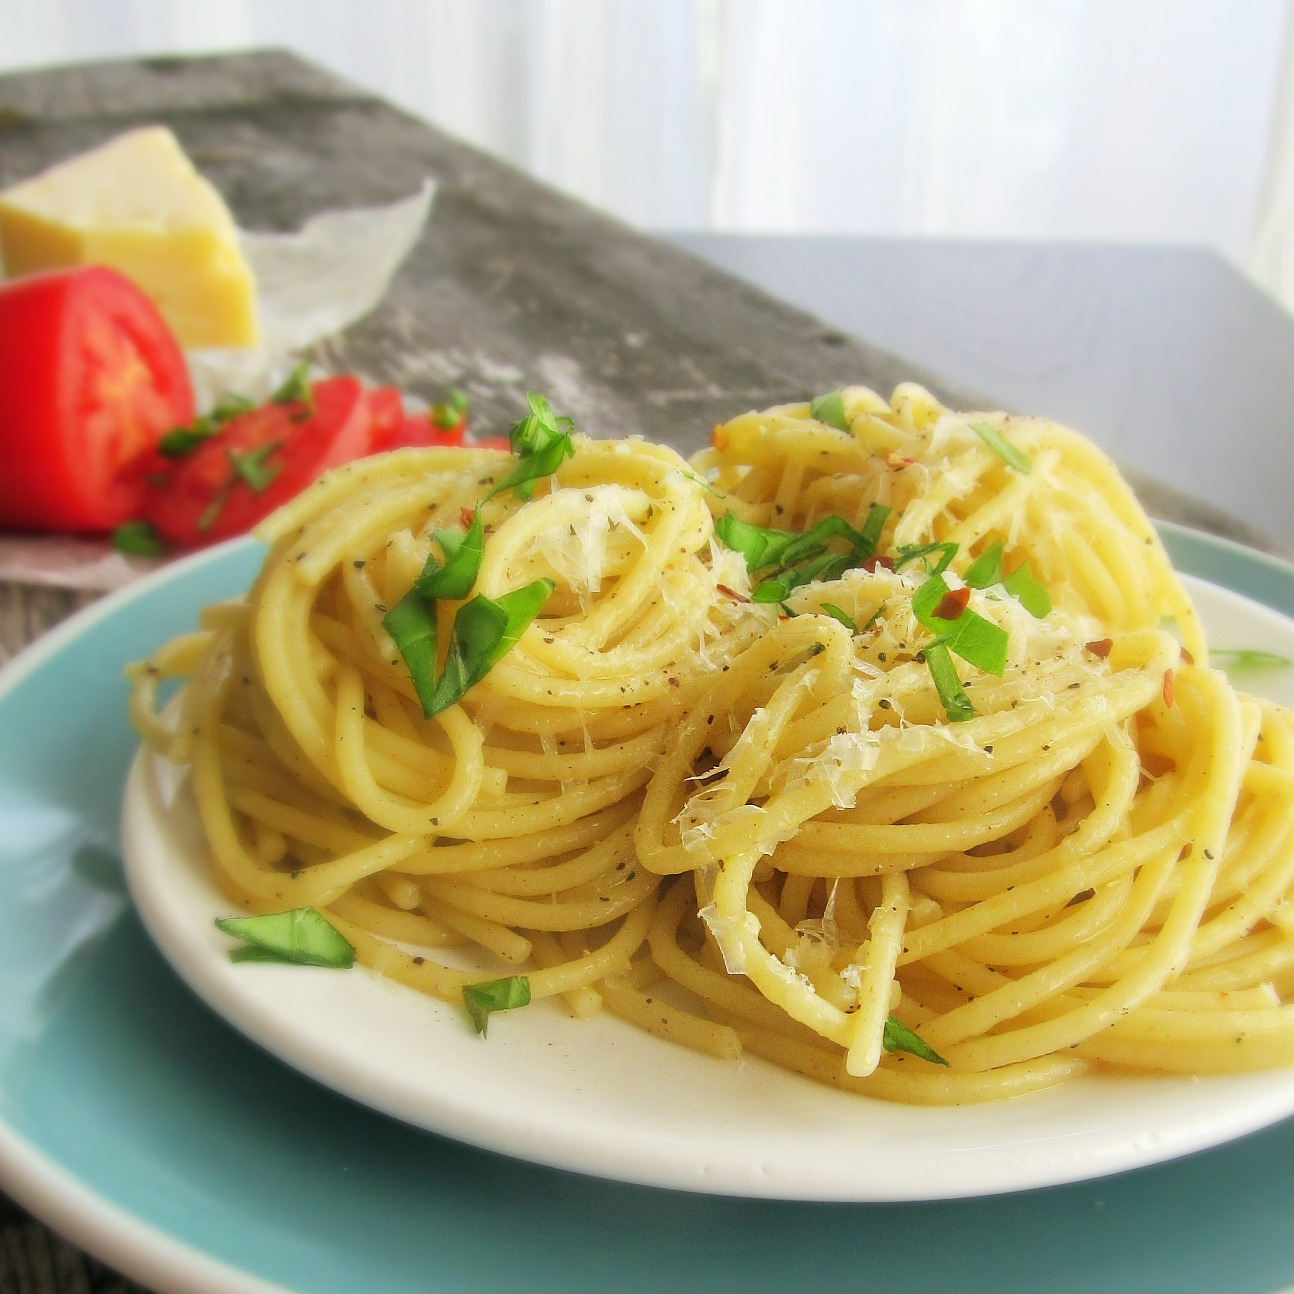 If simple pasta just won't cut it as a main dish in your house ...